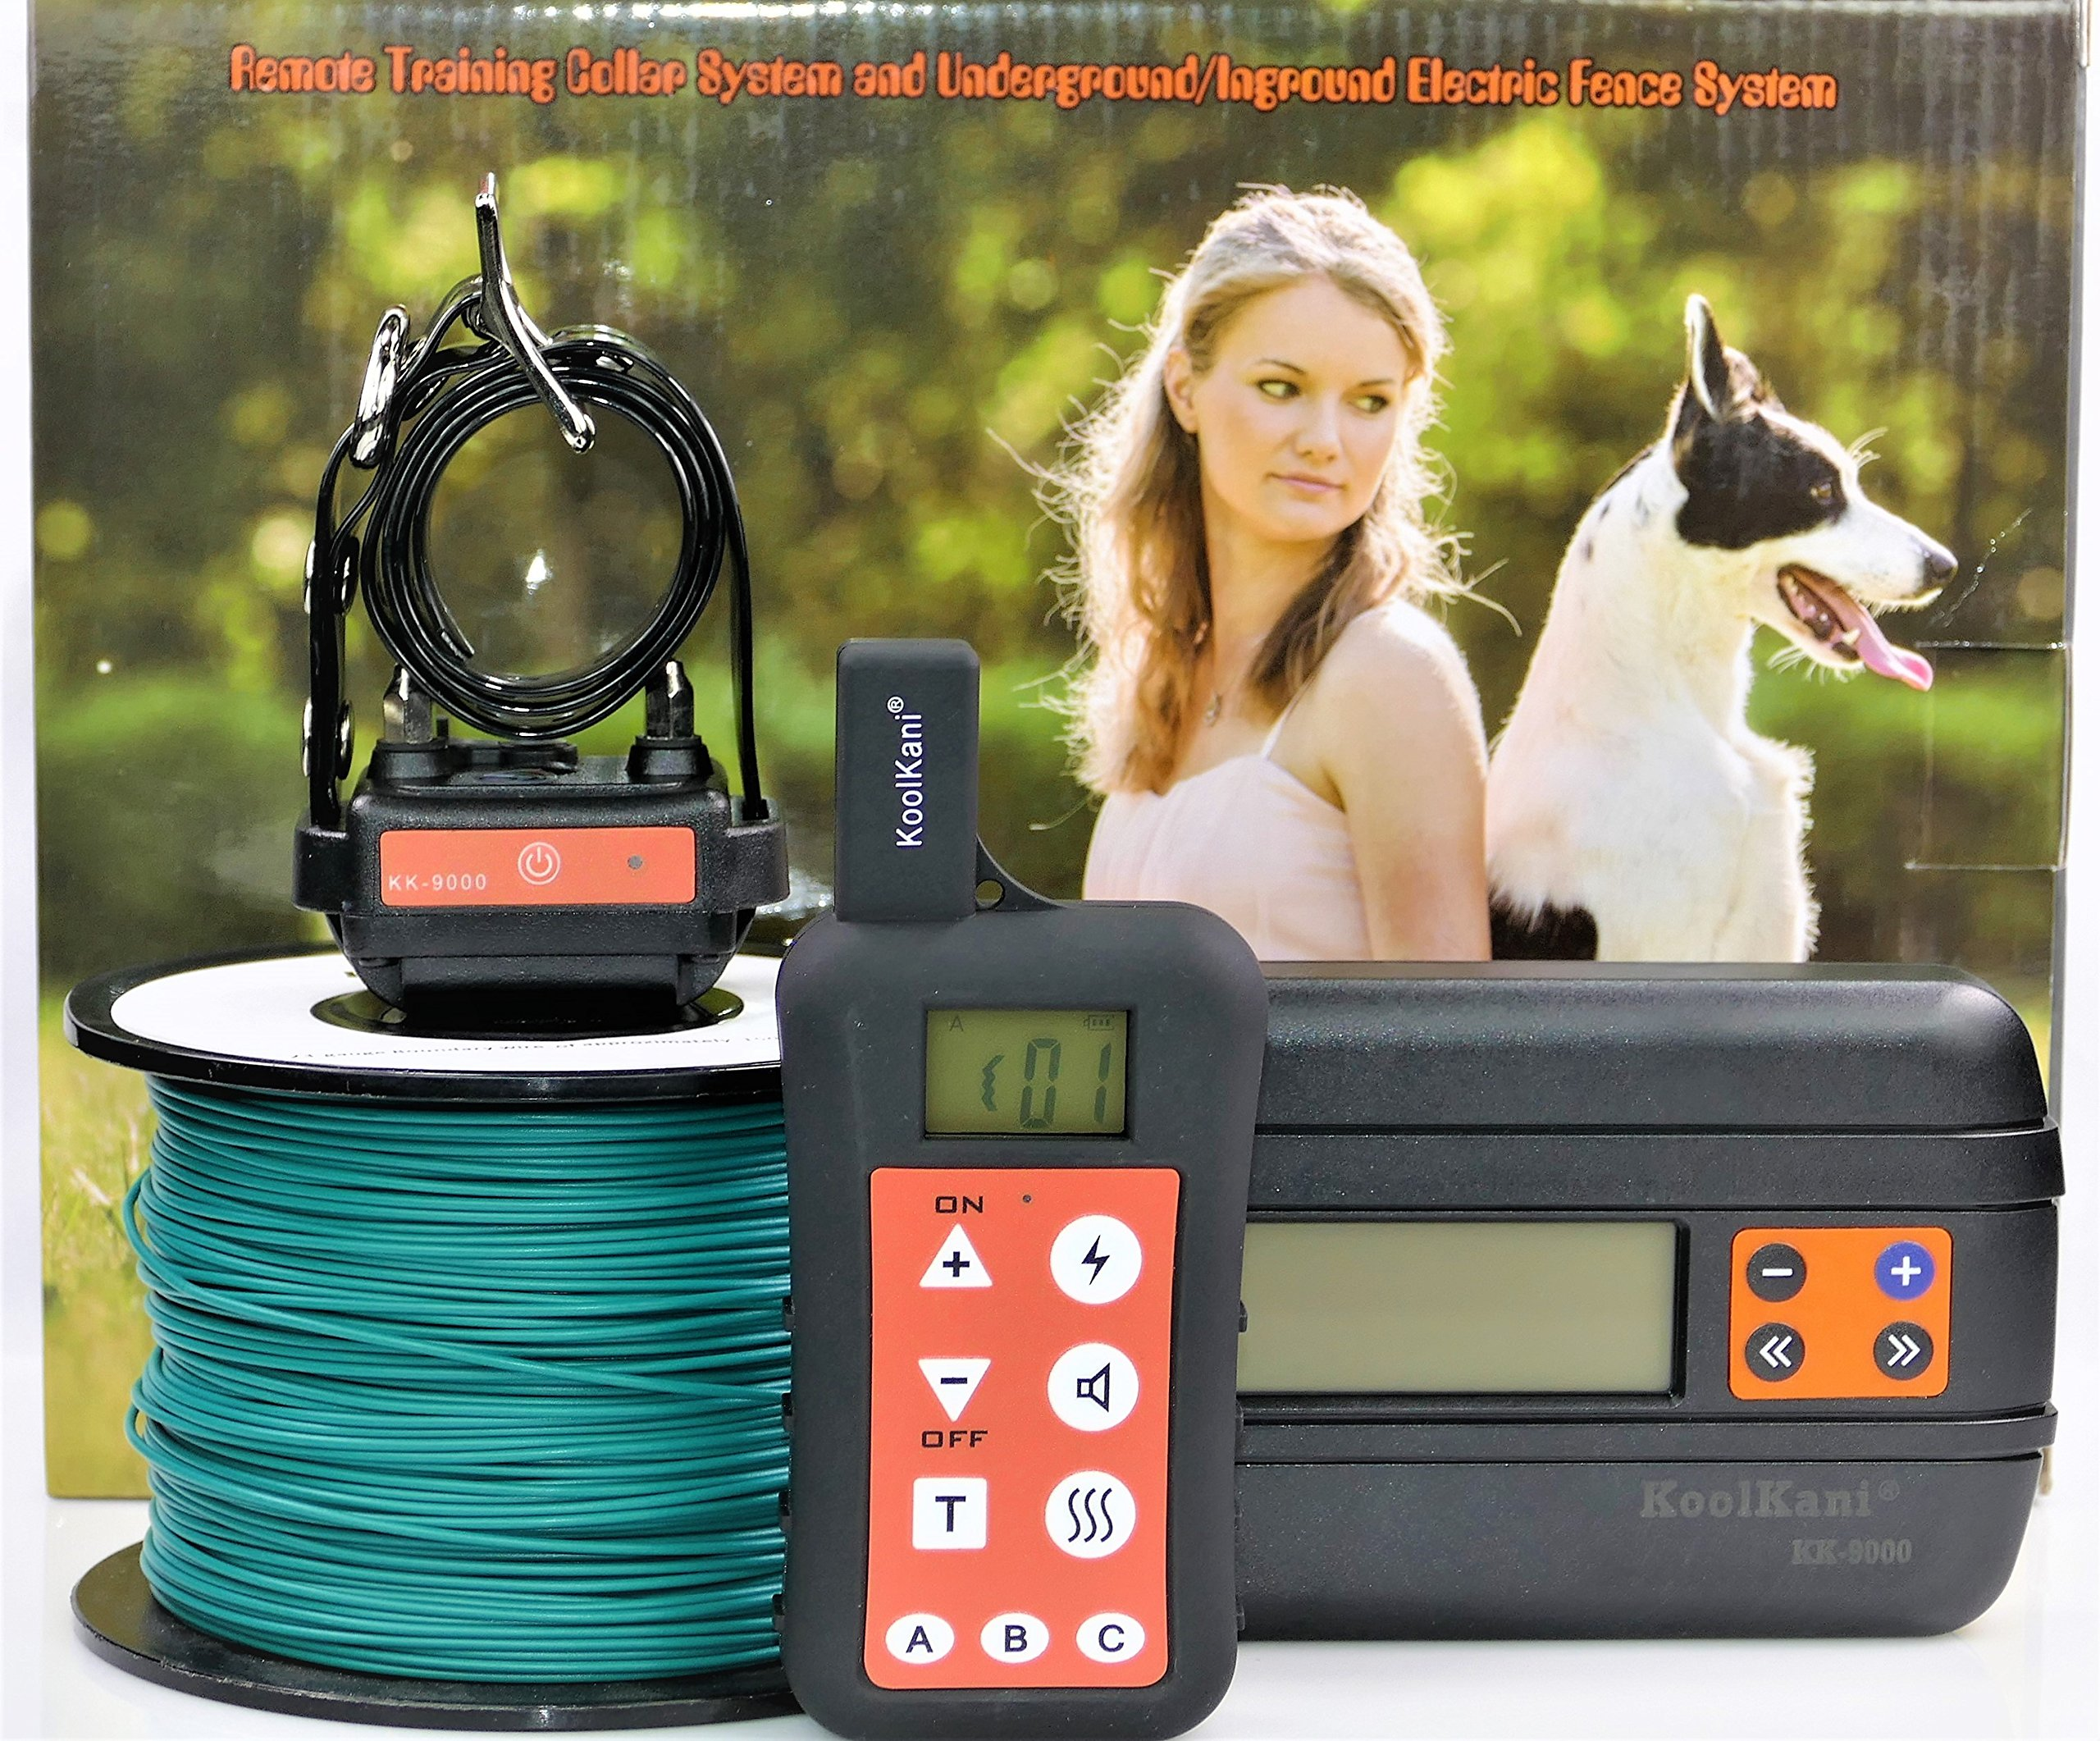 Remote Dog Training Shock Collar & Underground/ In-ground Electronic Dog Containment Fence System Combo (One Dog System)